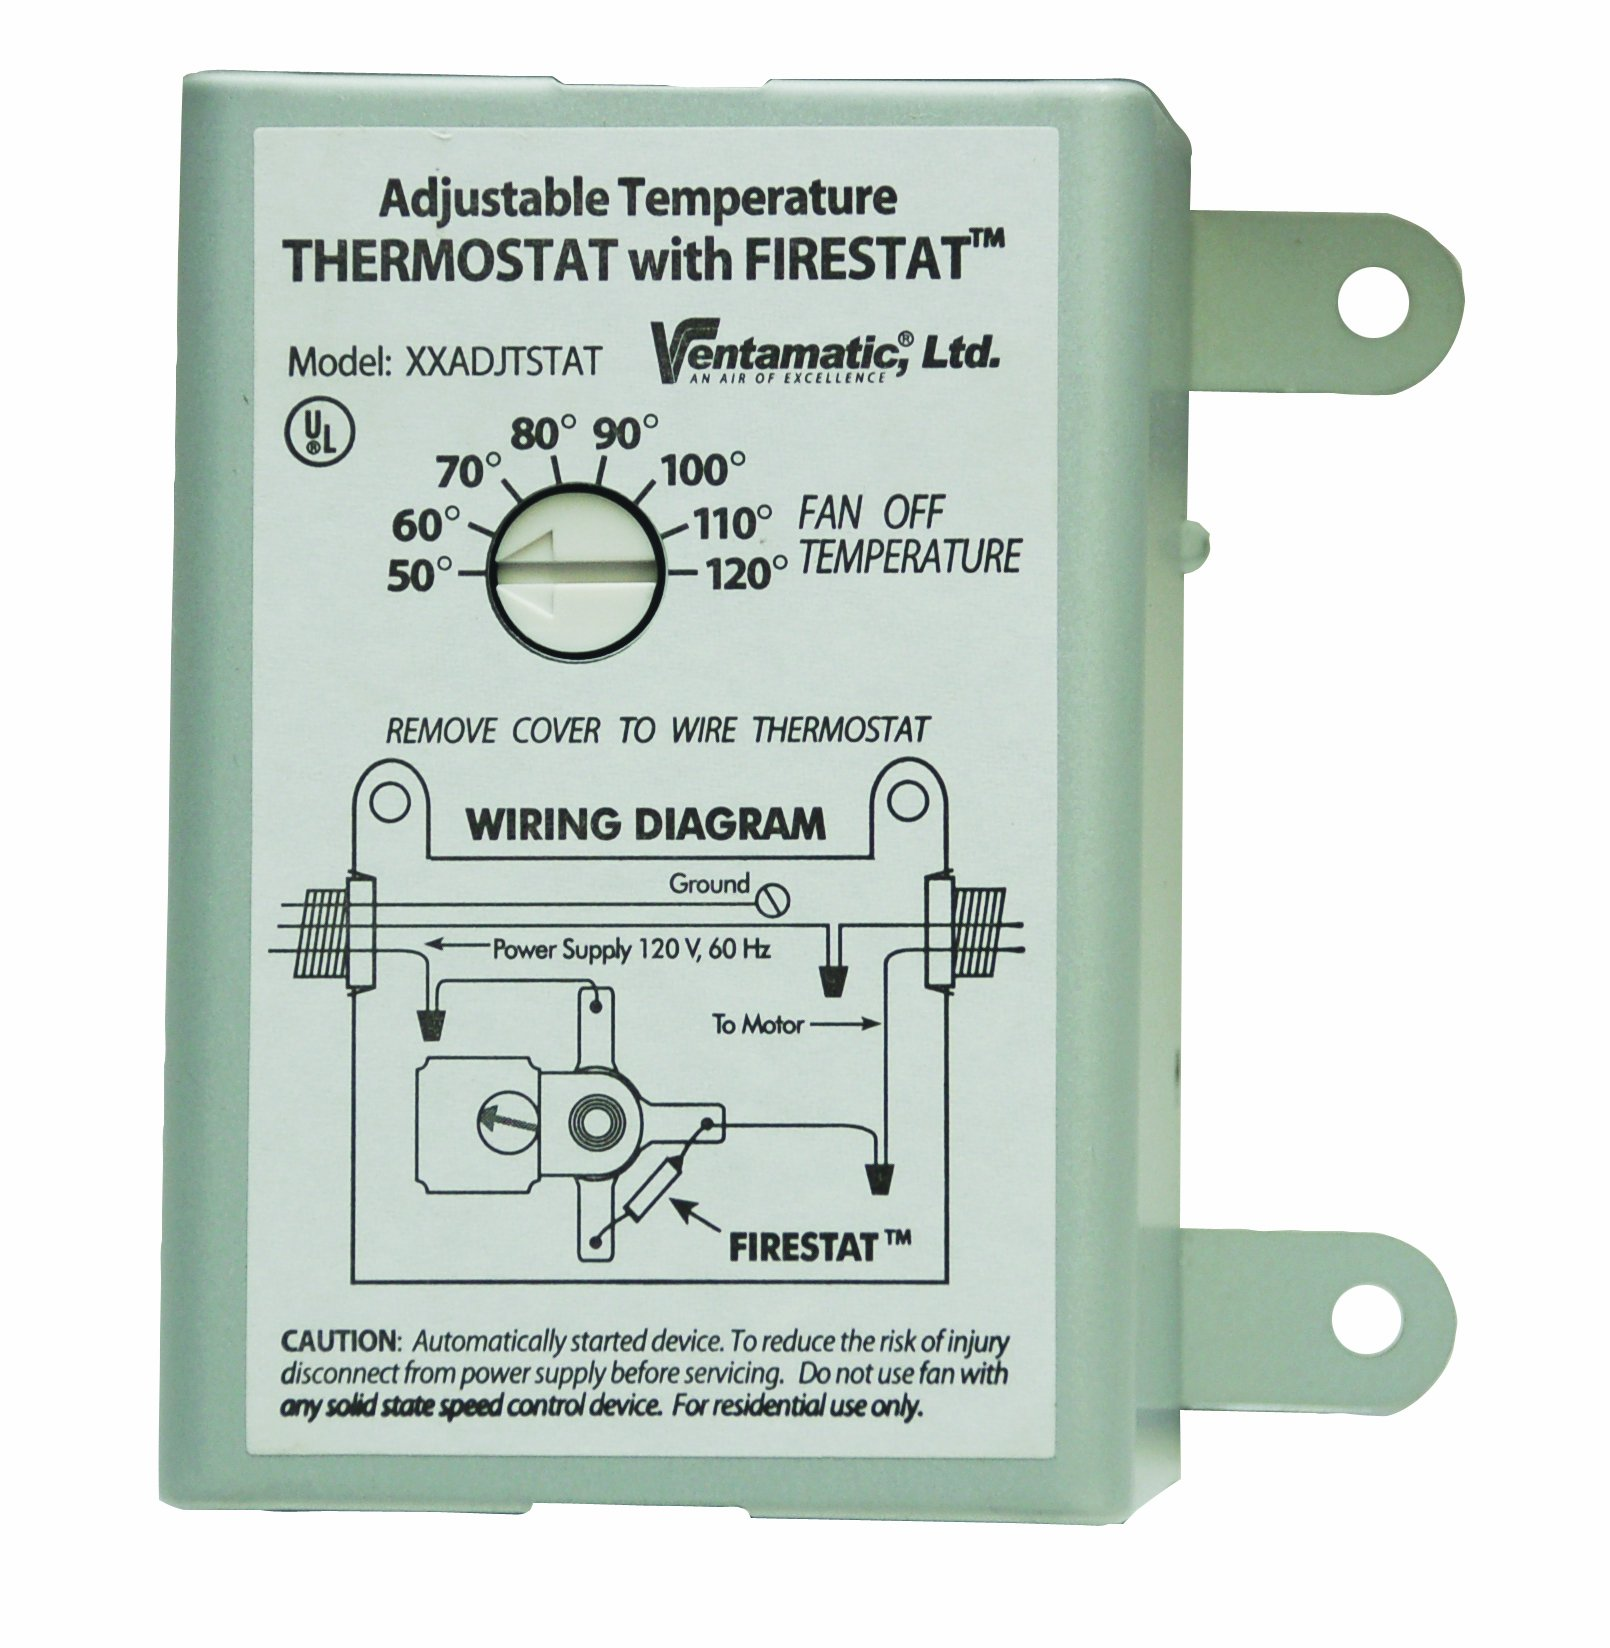 Ventamatic XXFIRESTAT 10-Amp Adjustable Programmable Thermostat with Firestat for Power Attic Ventilators, Replacement Thermostat by Ventamatic